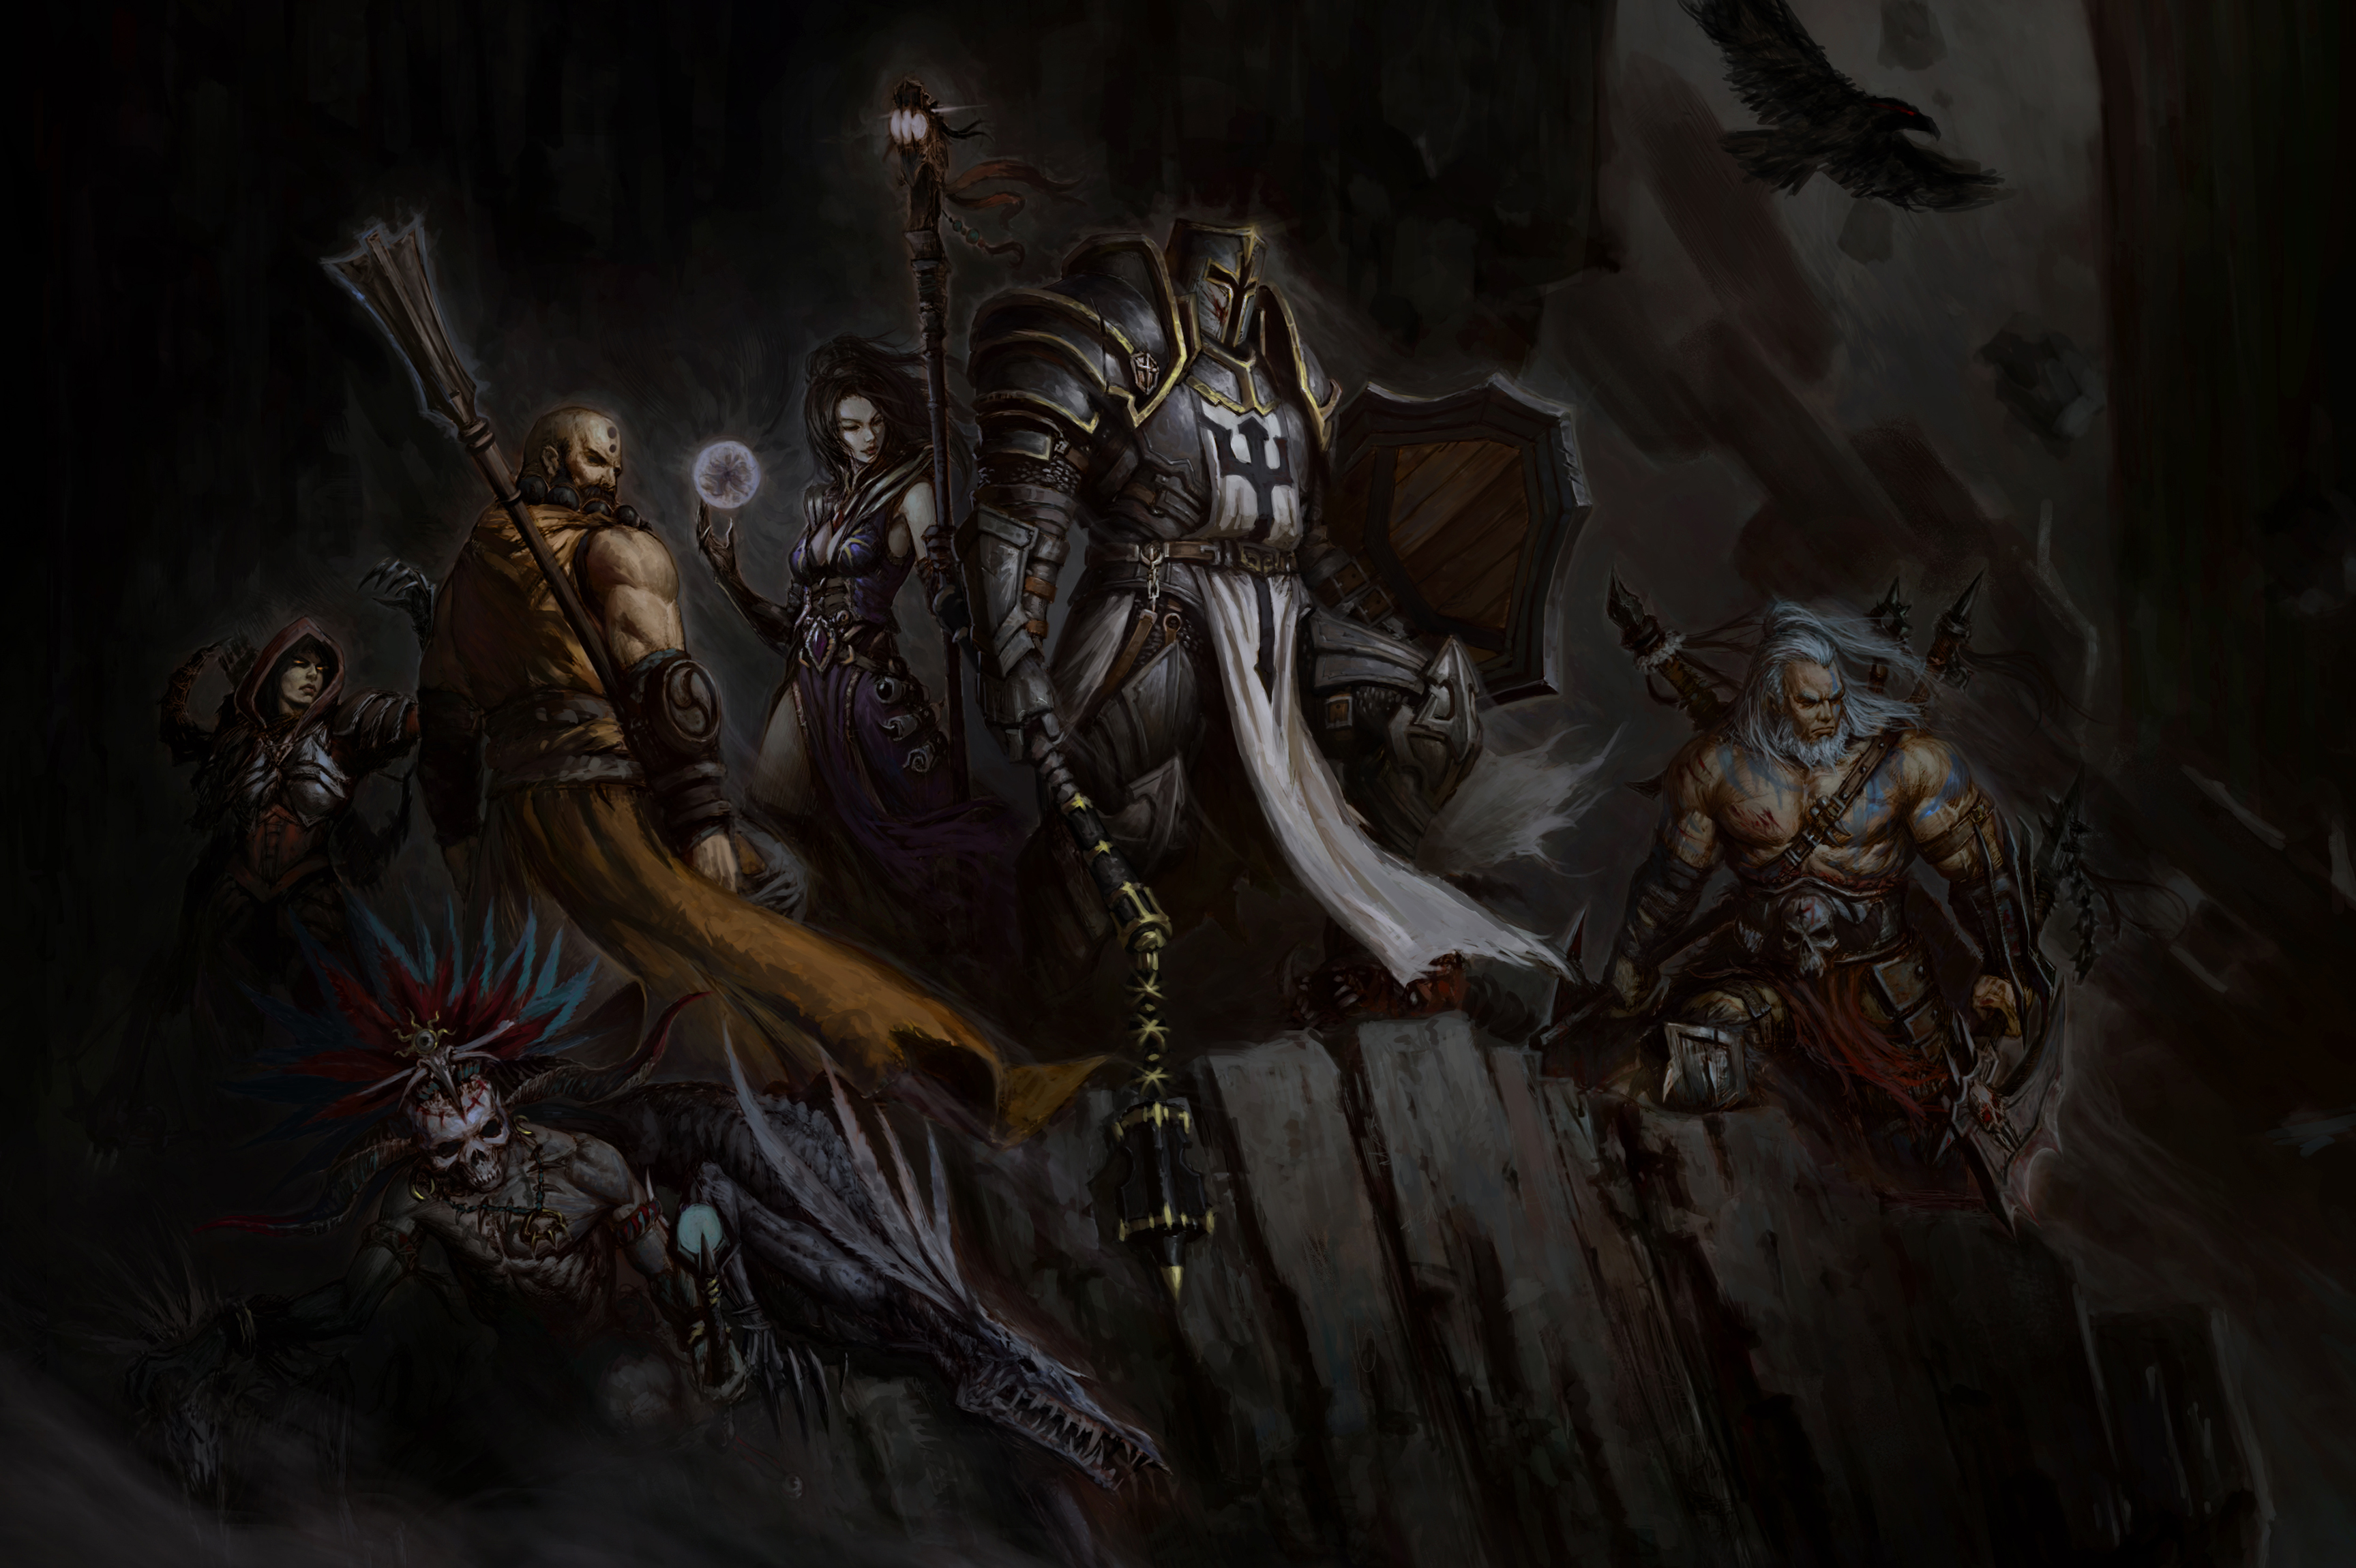 Download Wallpaper From Game Diablo III Reaper Of Souls With Tags Barbarian Witch Doctor Demon Hunter Wizard Monk Crusader Screen